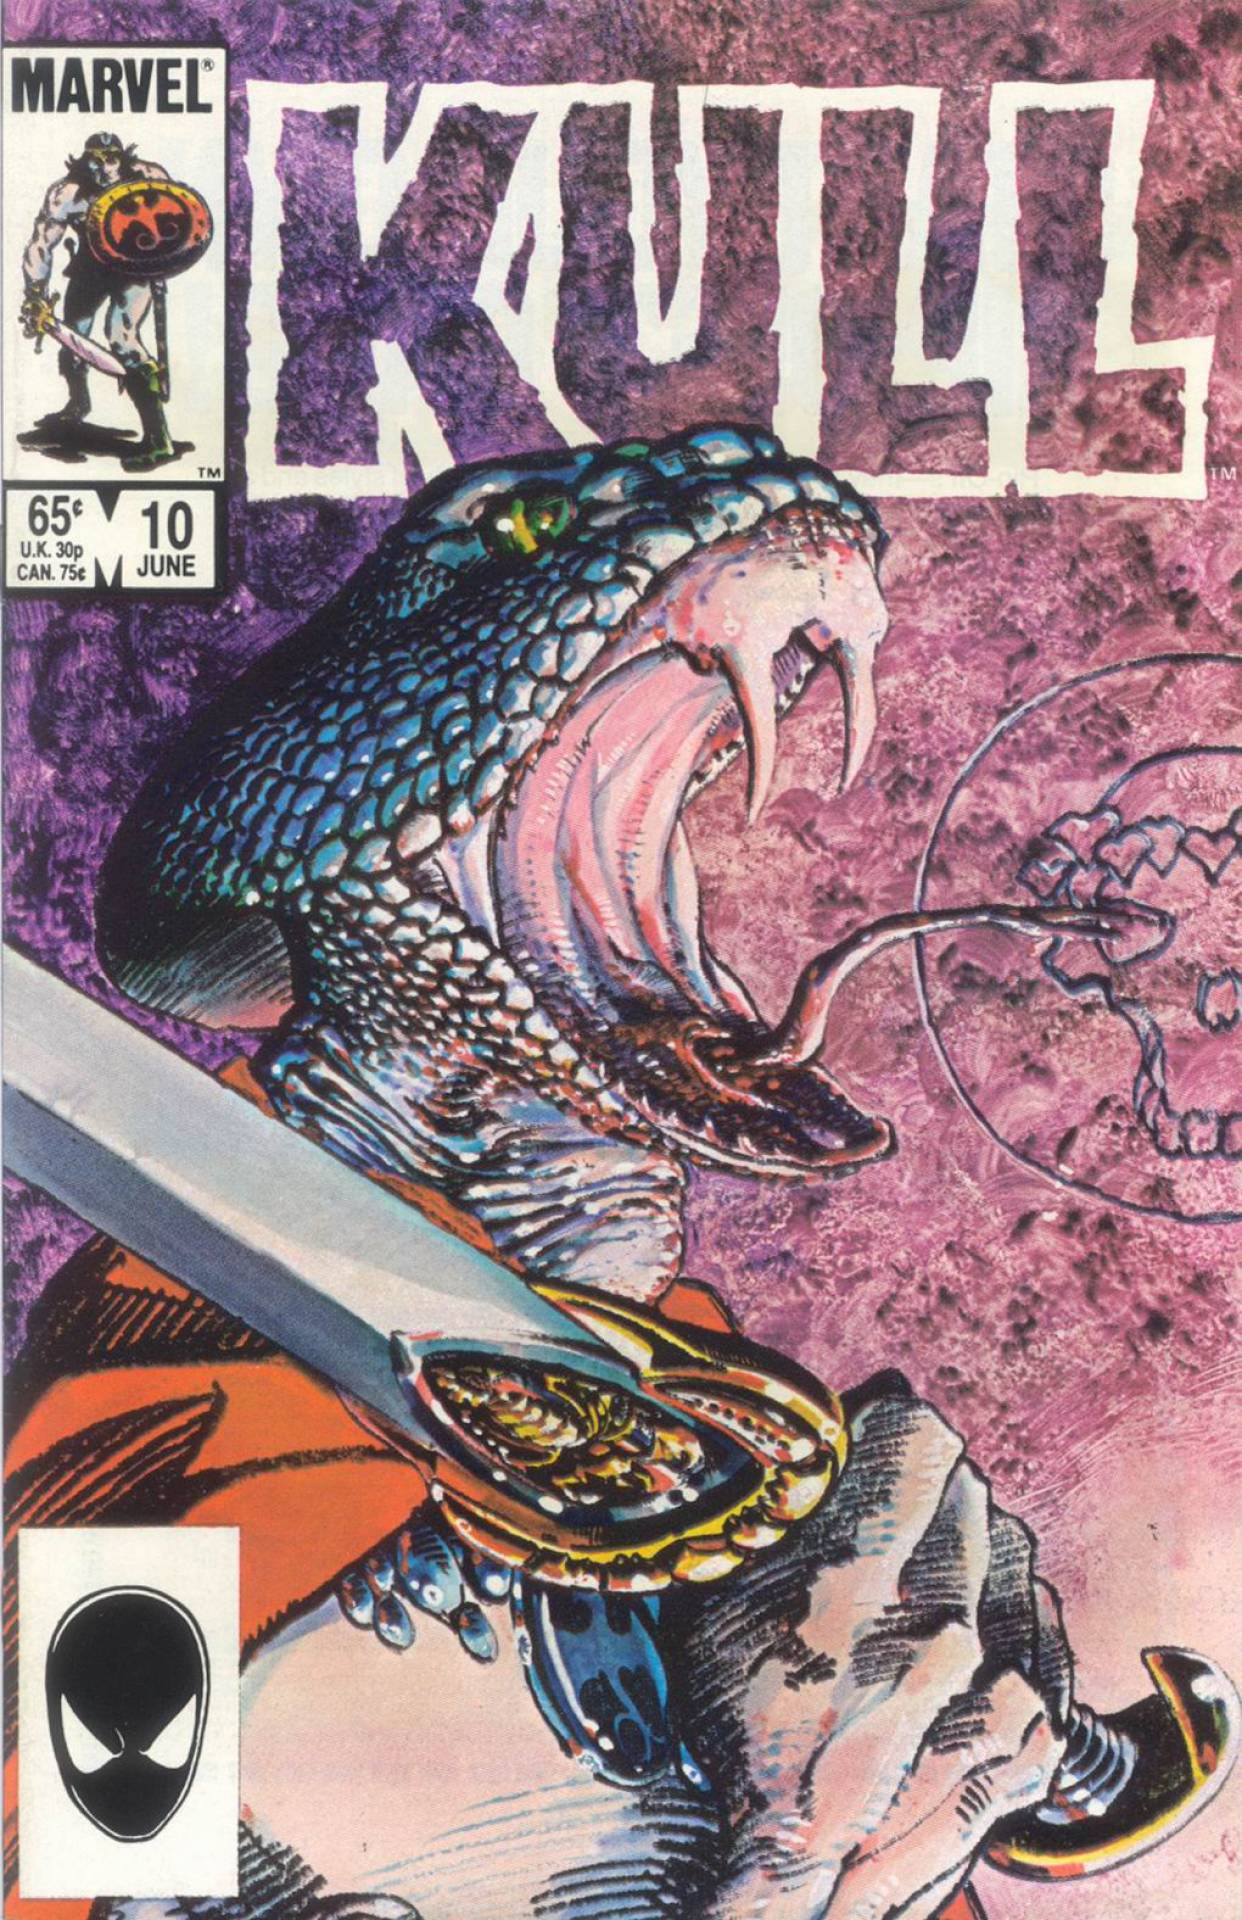 Barry Windsor-Smith's awesome companion piece to the previous issue's cover